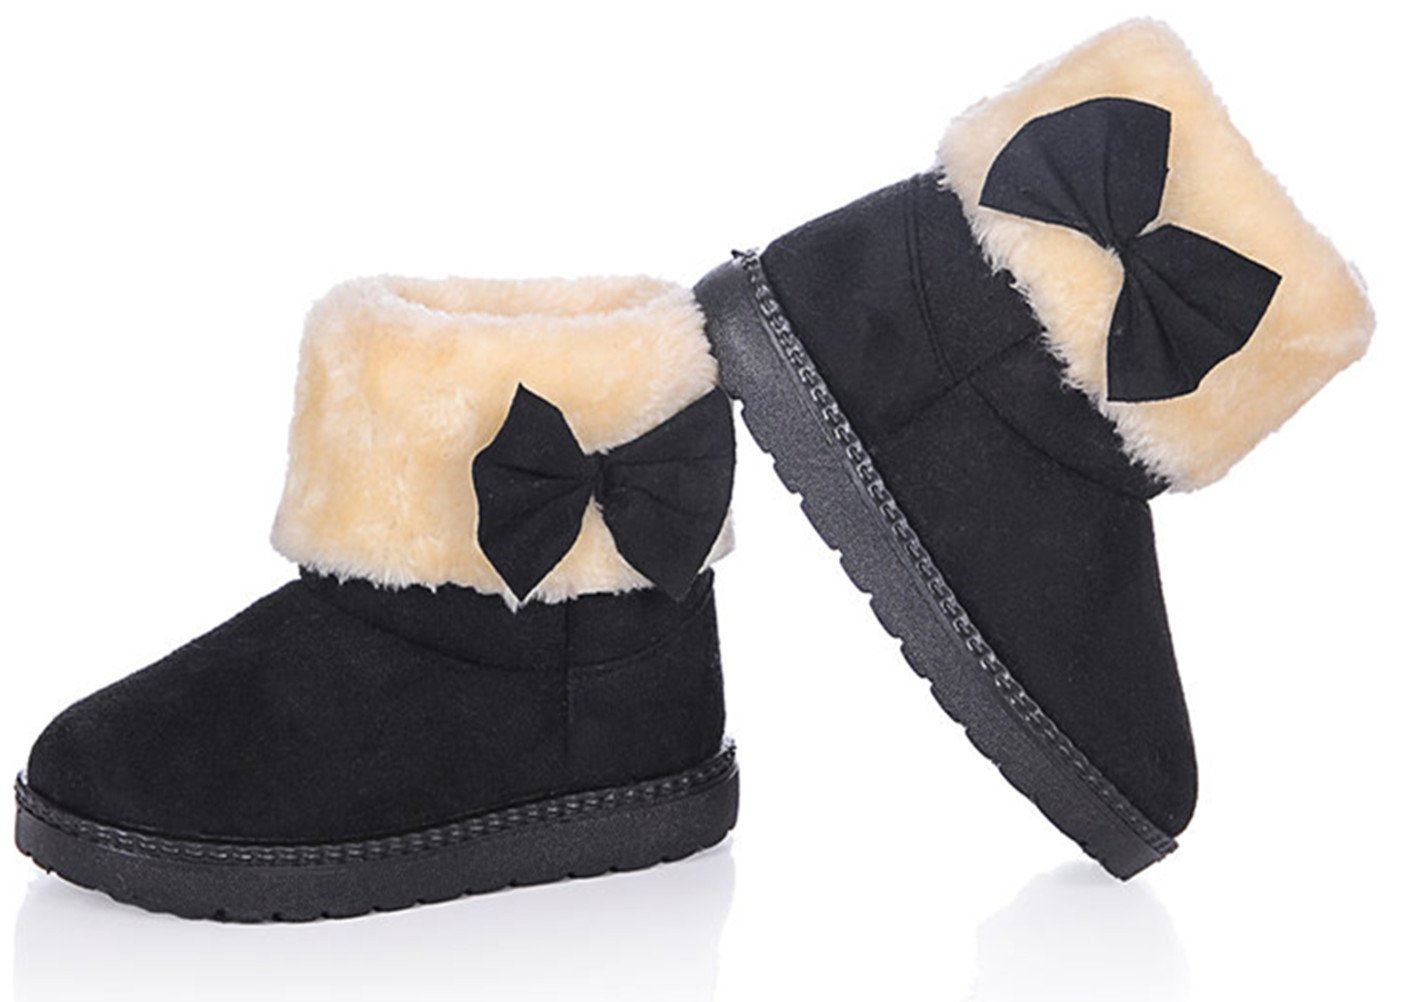 DADAWEN Baby's Girl's Toddler Fashion Cute Bowknot Fur Lining Princess Warm Snow Boots Black US Size 7.5 M Toddler